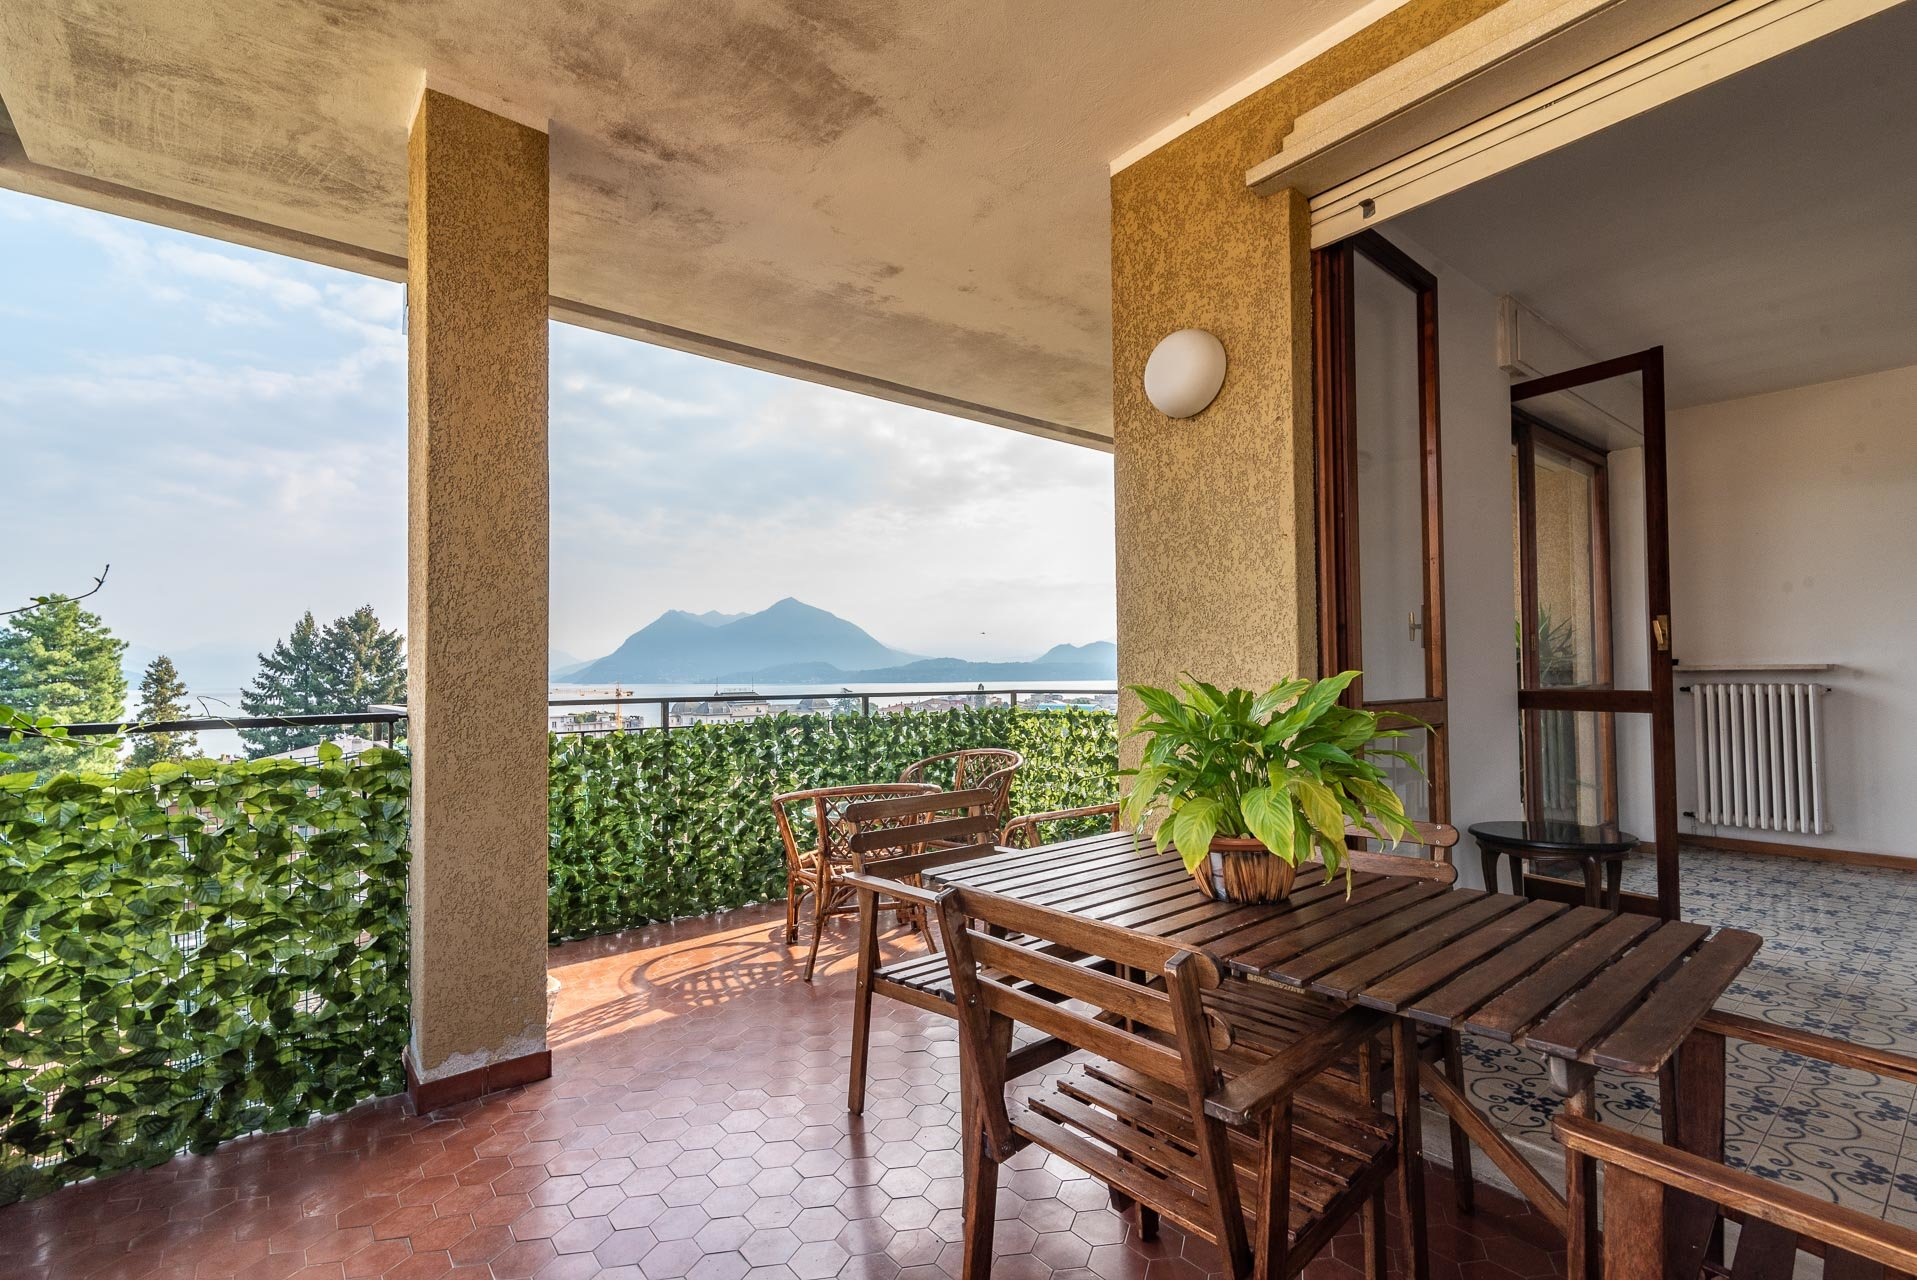 Apartment for rent in Stresa - outdoor dining table